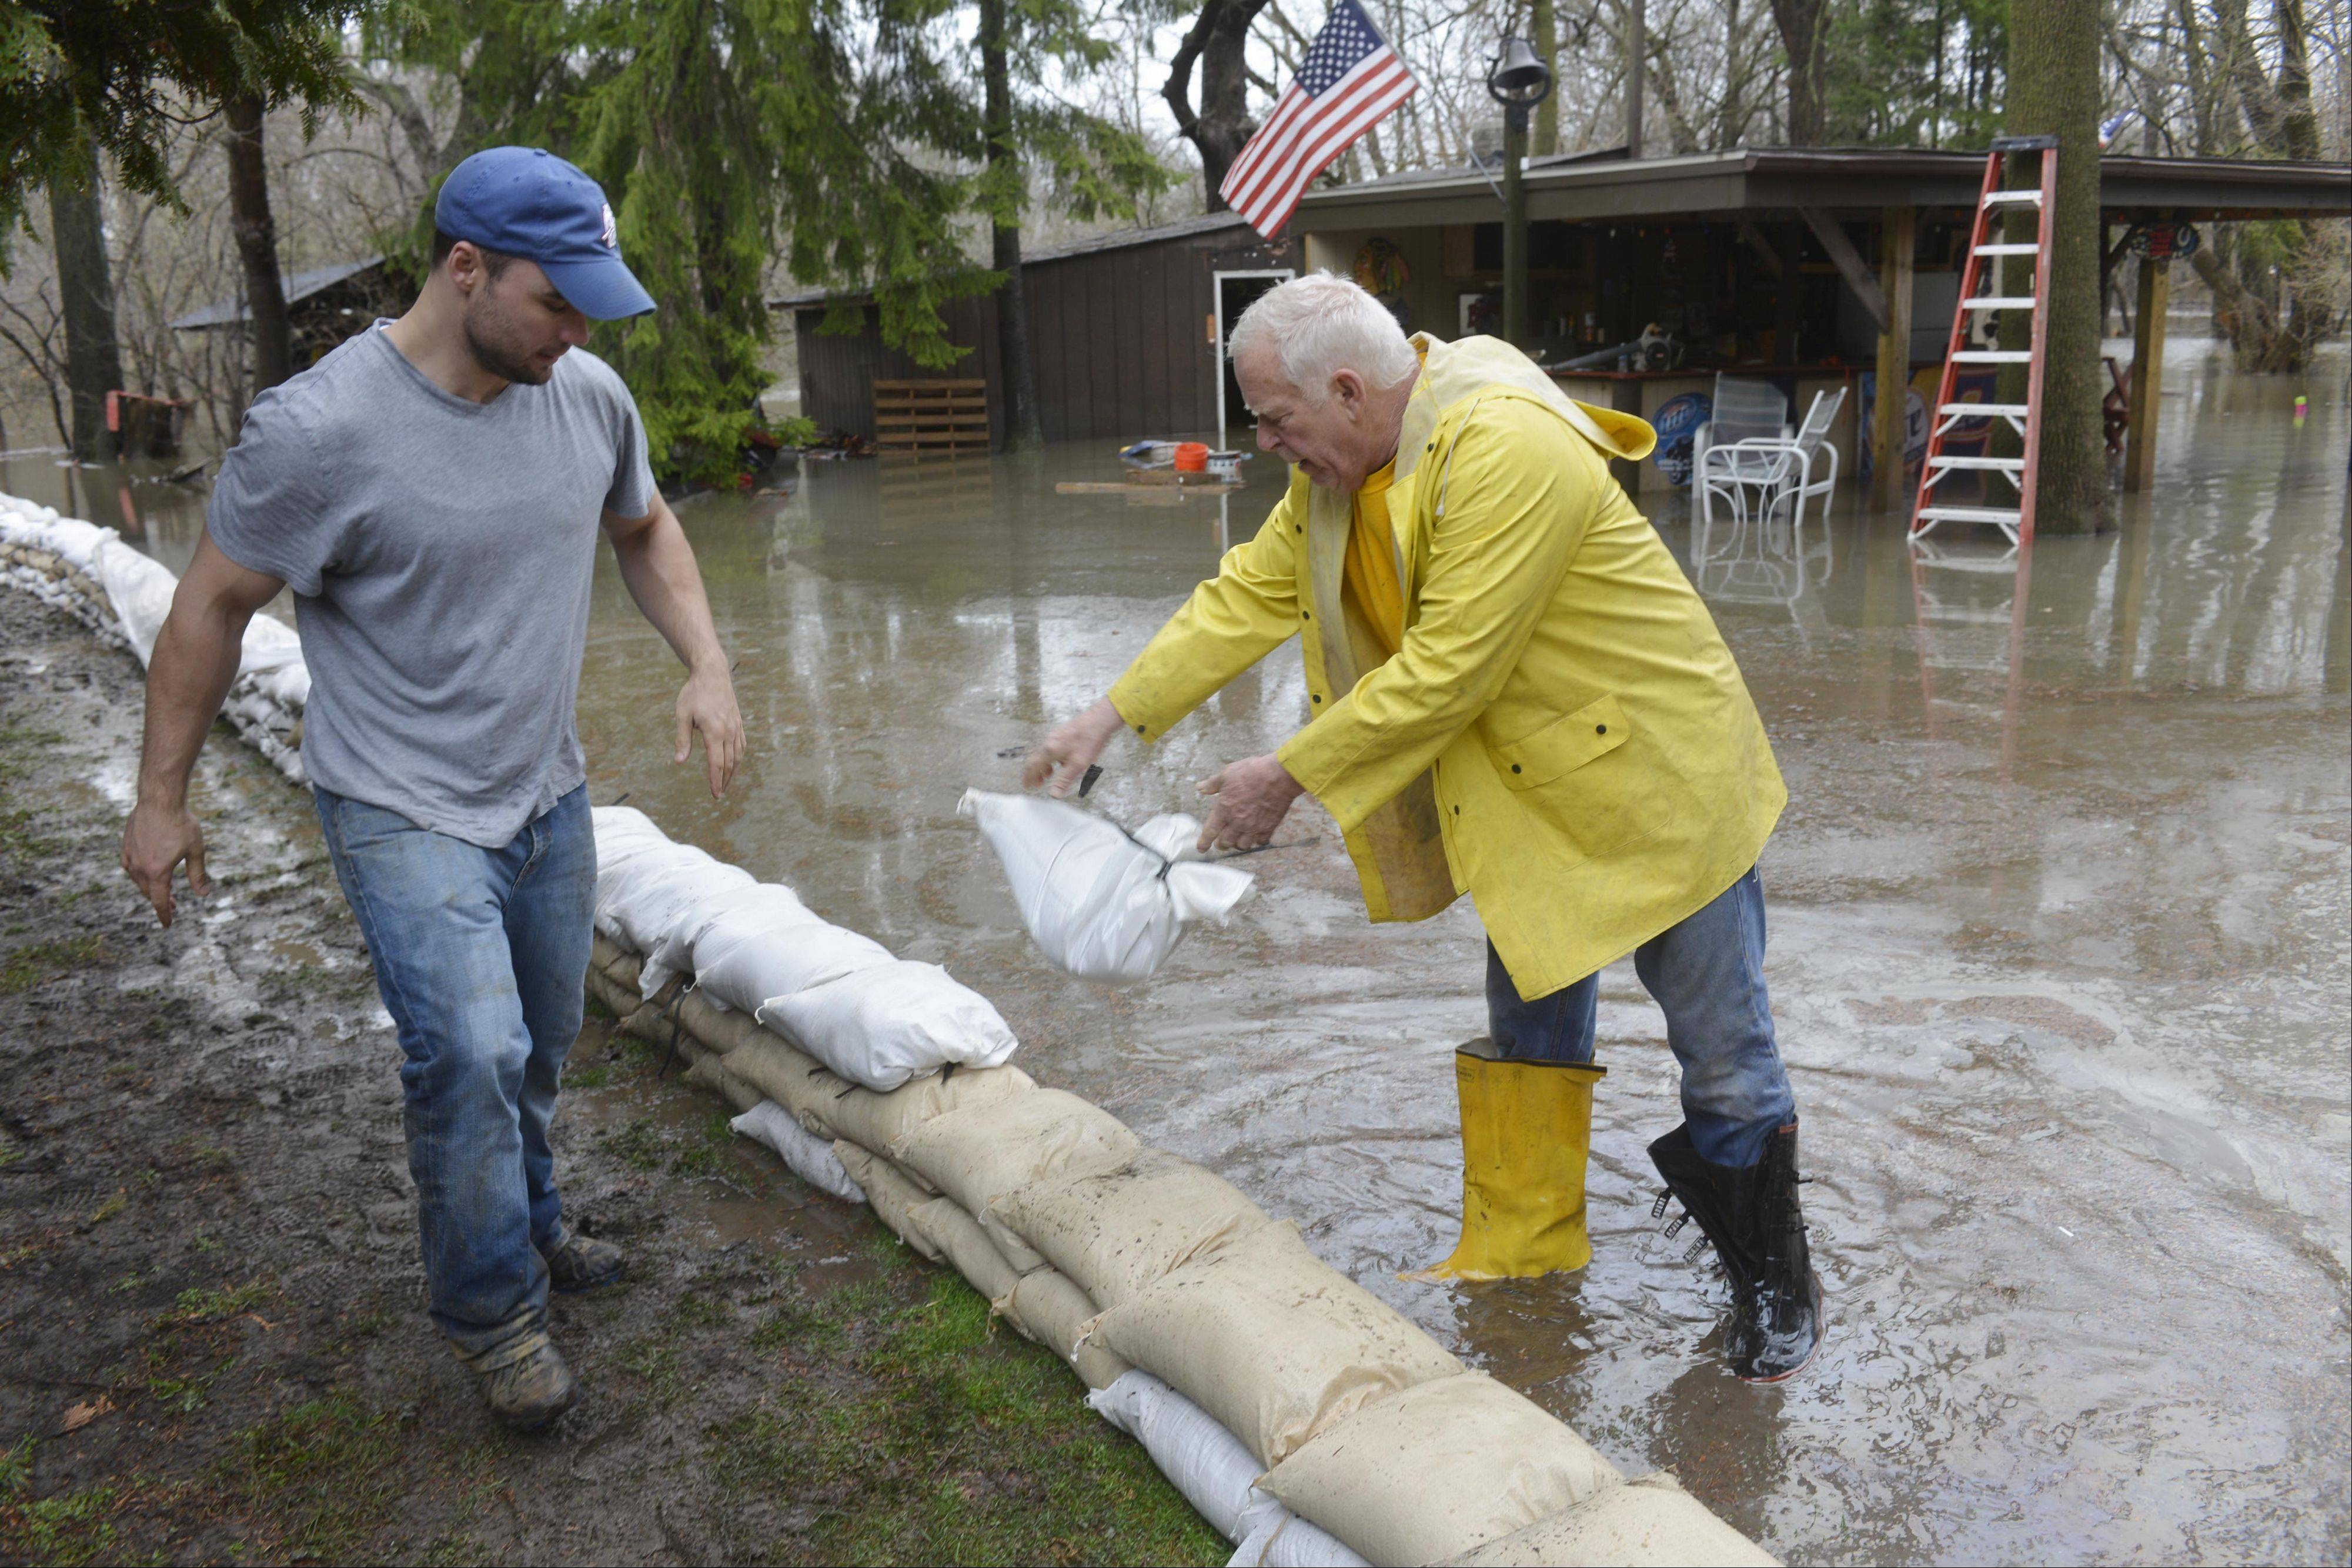 Matthew Jentel, left, and Dave Geist help build a sandbag wall around the home of James Eck last month in the flooded Big Bend neighborhood in Des Plaines.